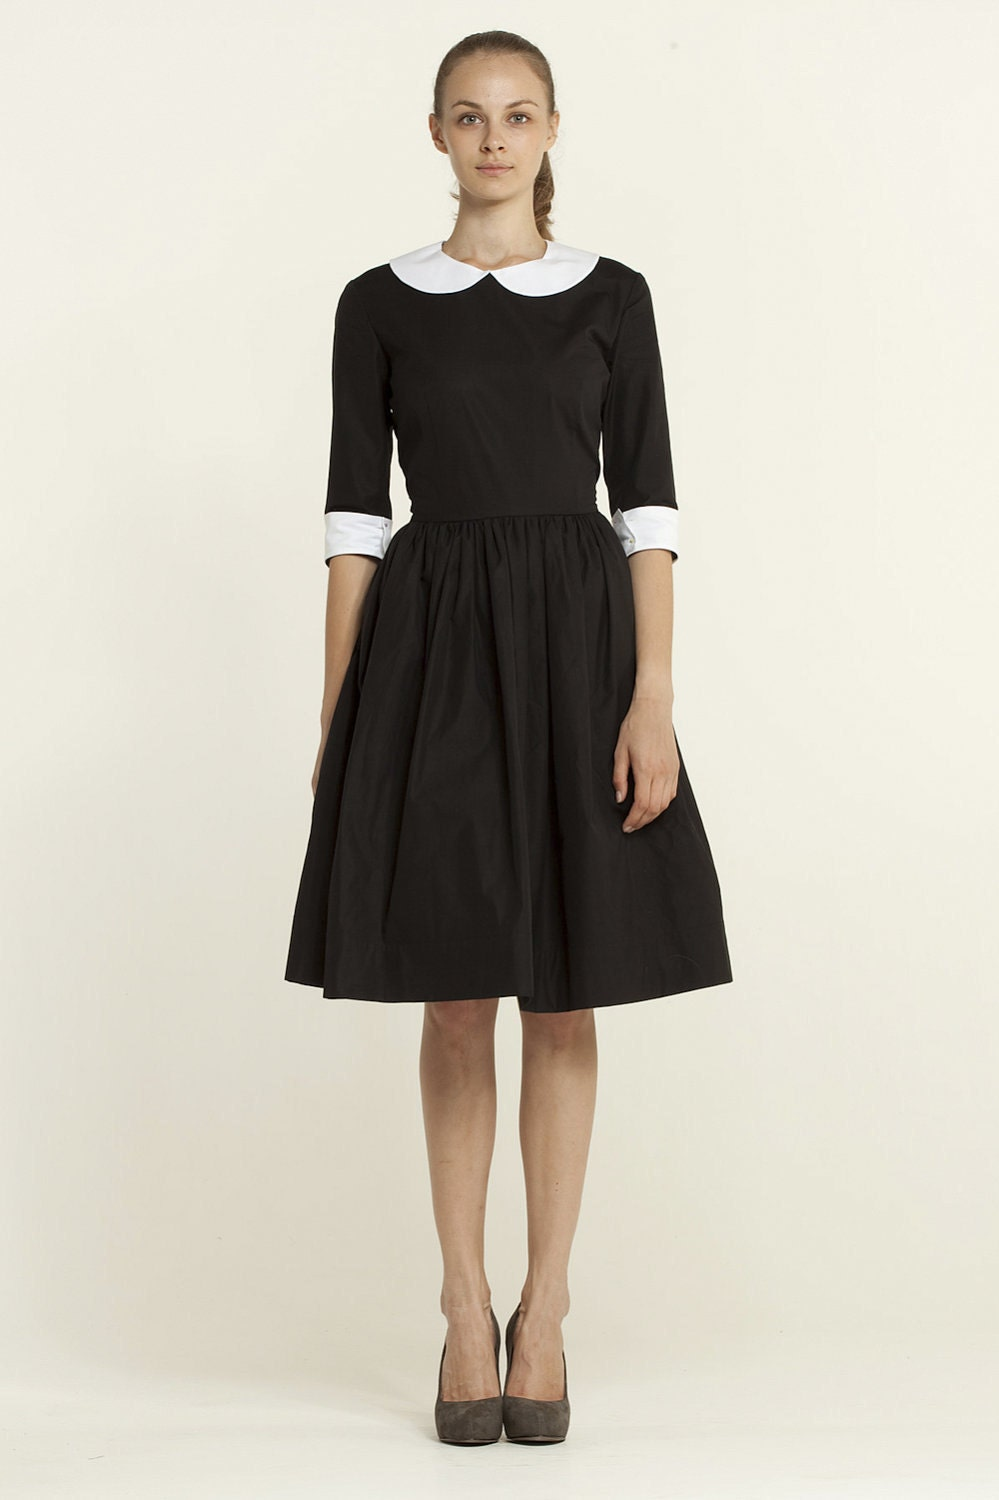 HOME/ WOMENS COLLAR DRESS. CATEGORIES. FILTER Done. Size. Color. womens collar dress. SORT BY. Newest Price low to high Price high to low Relevance. FILTER. Fear of missing out? Be the first to know about the latest deals, style updates & more! Sign up and be the first to know! EMAIL ADDRESS JOIN.